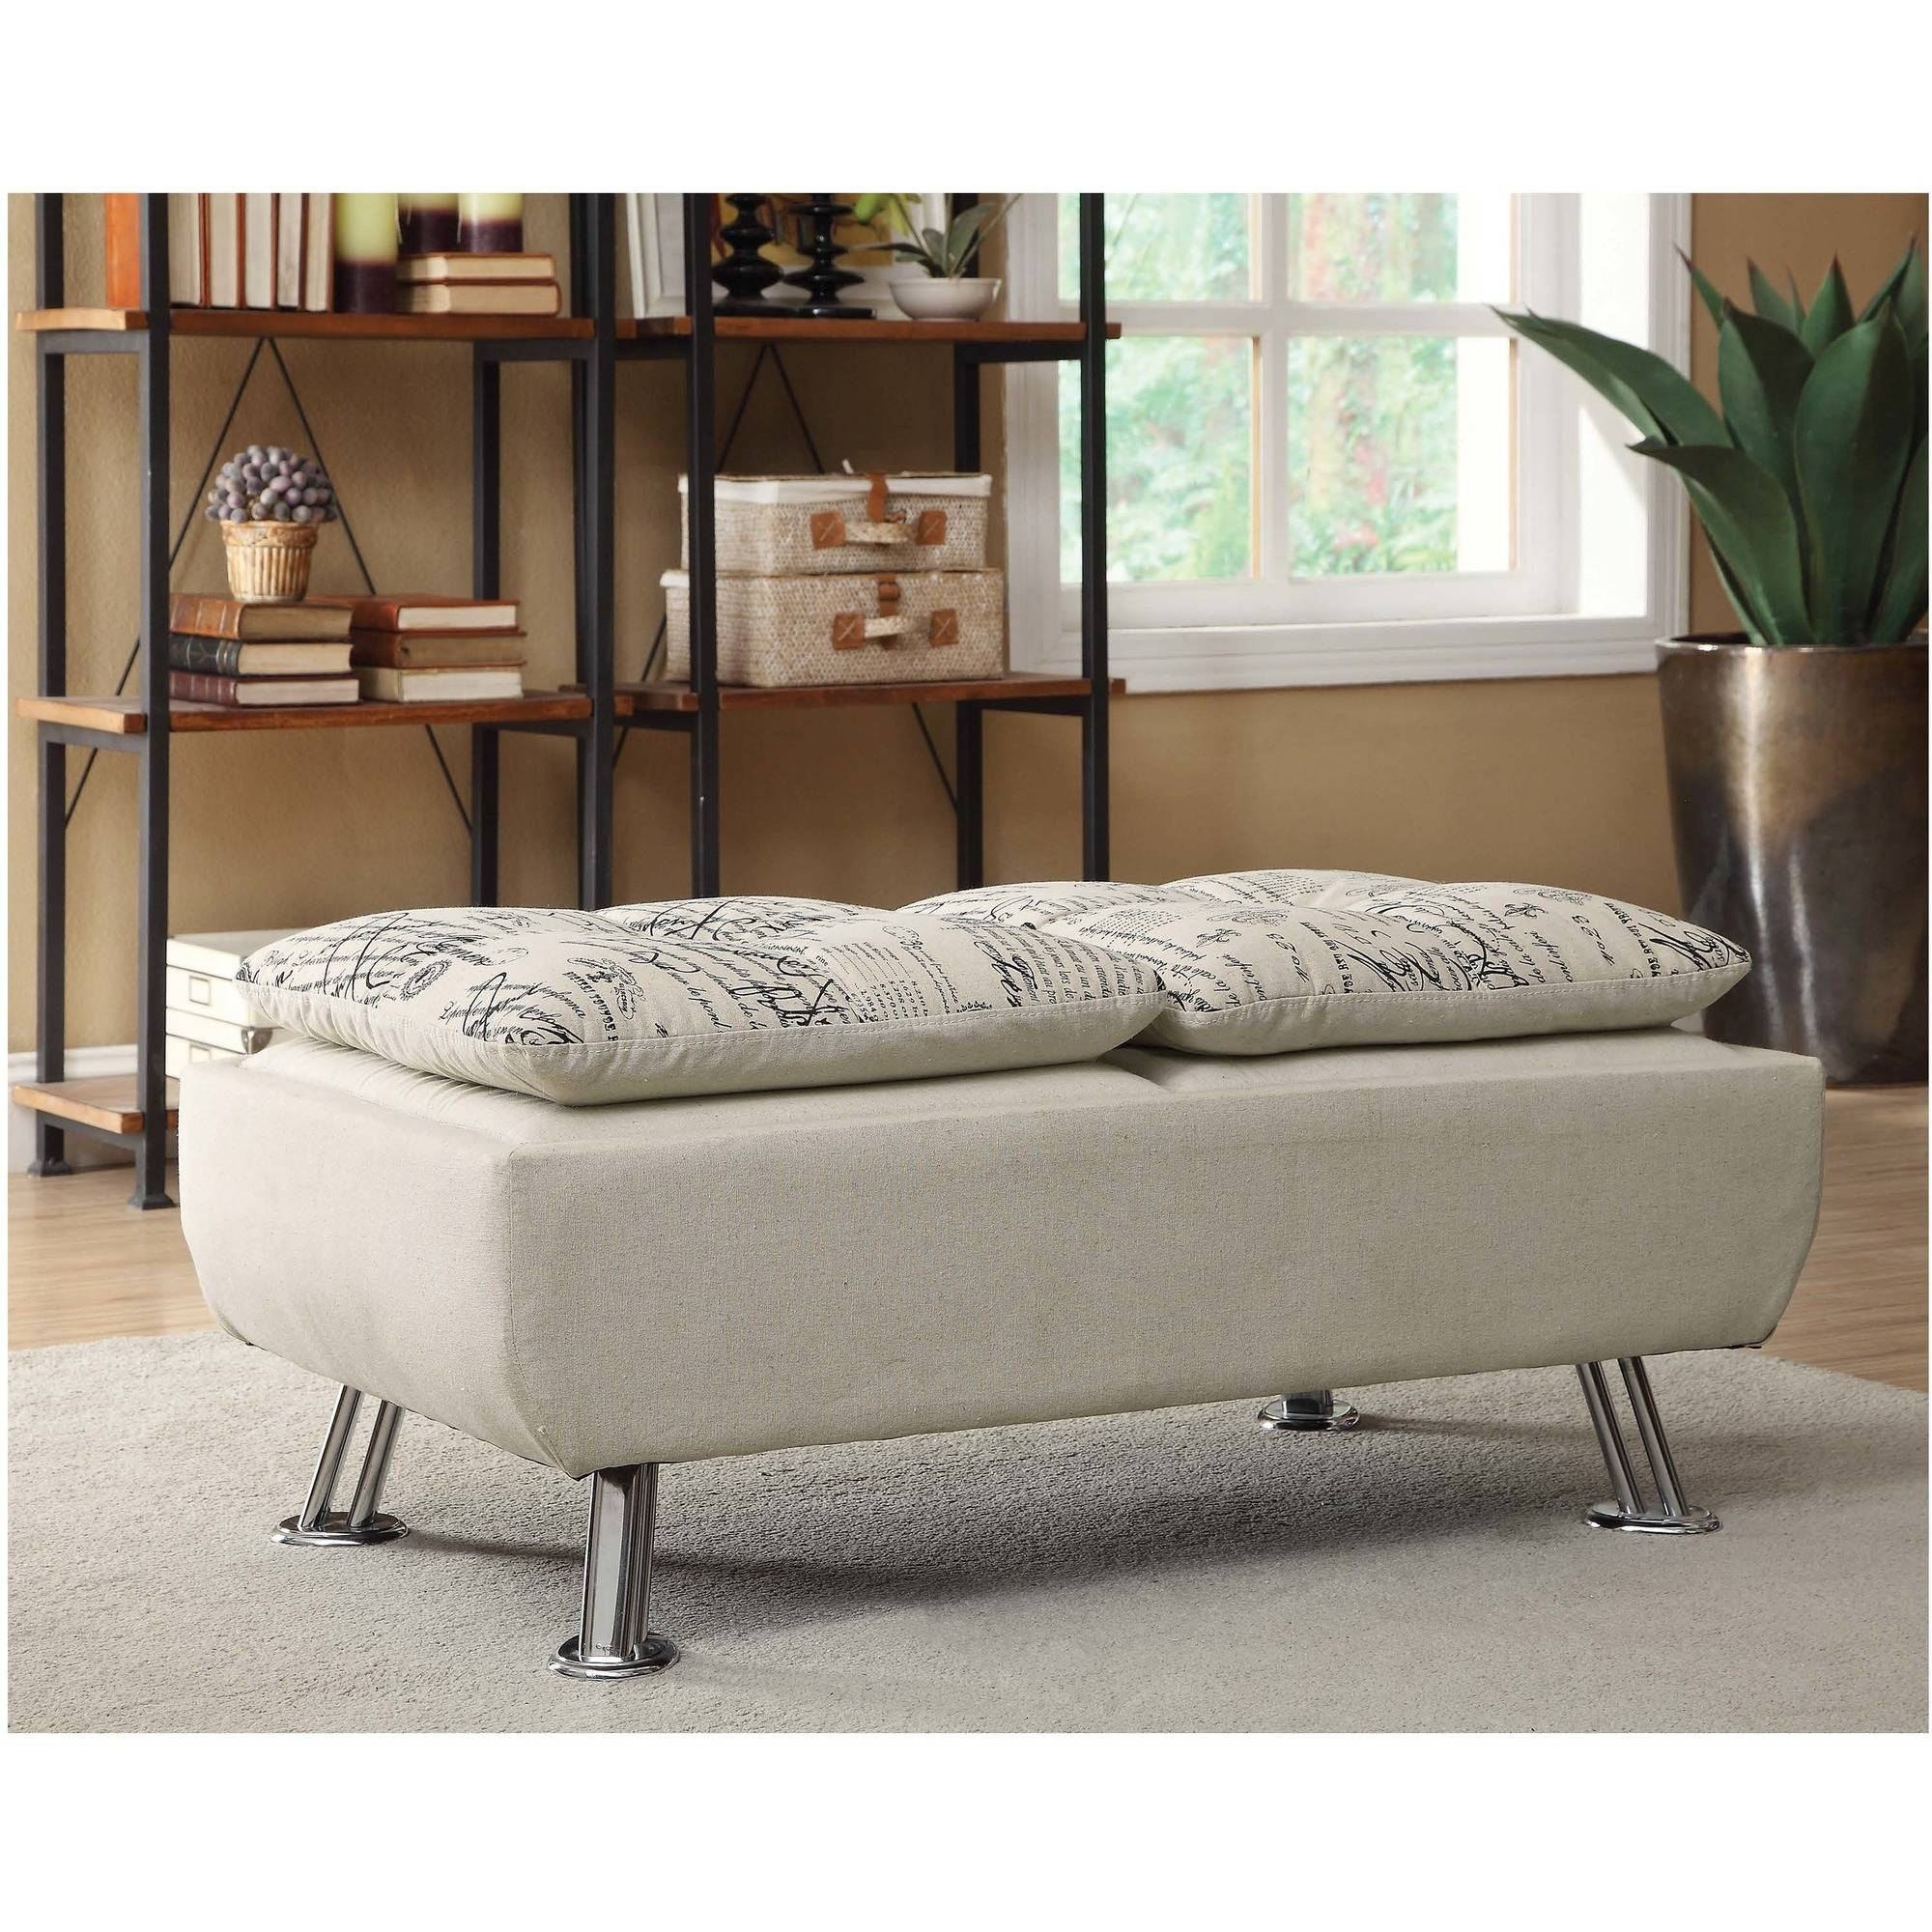 Coaster Furniture Olson Fabric Ottoman in Beige